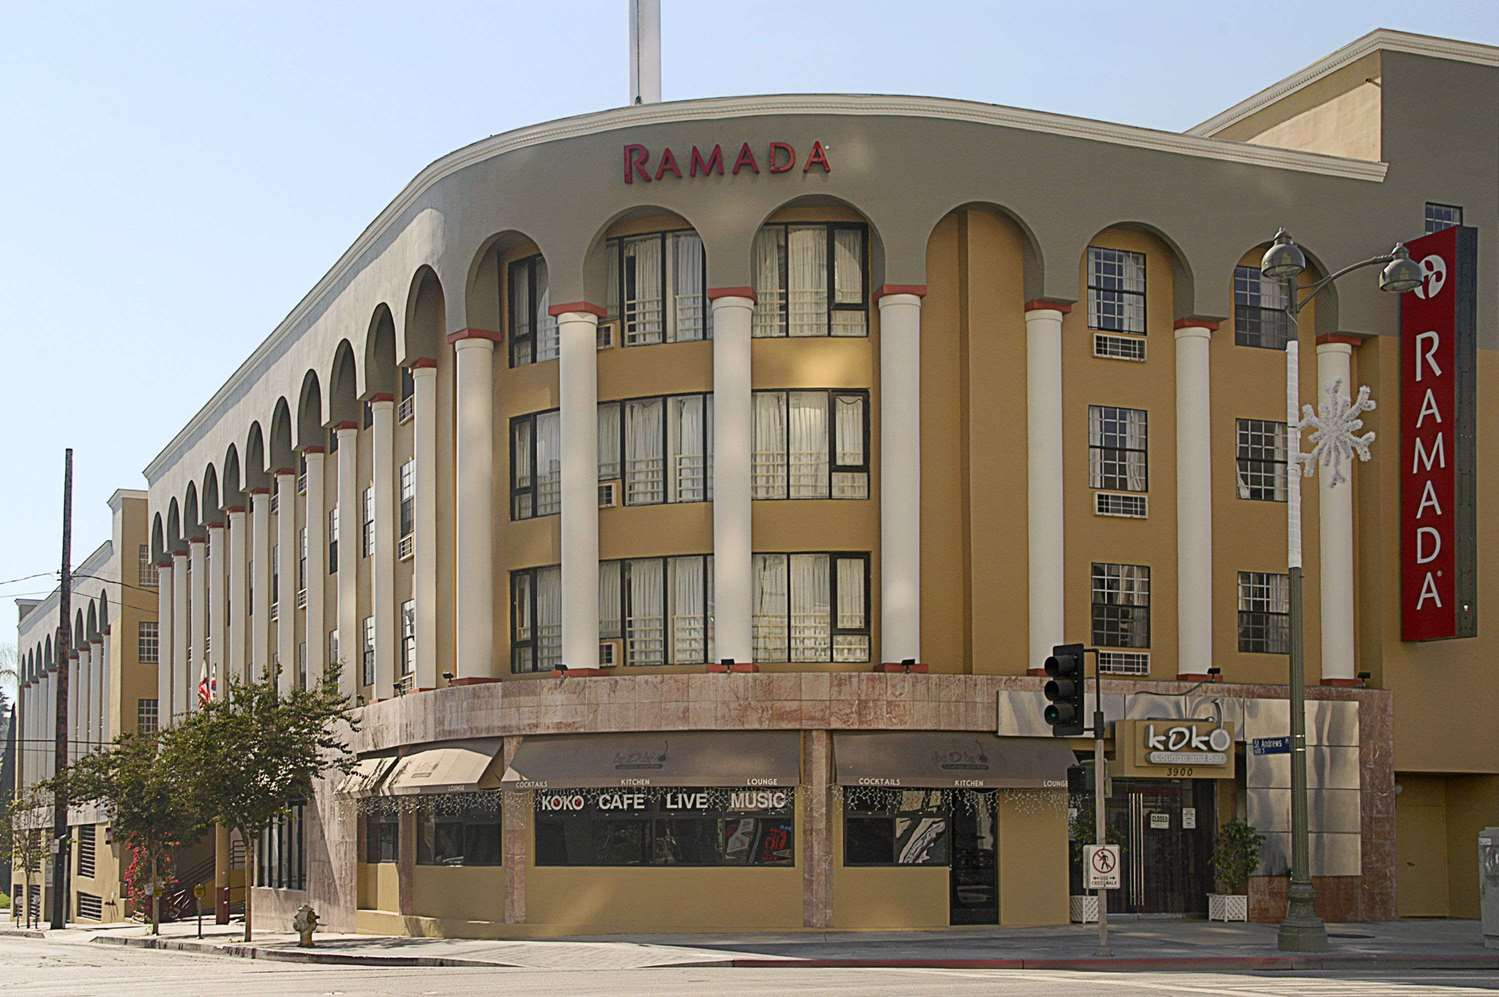 Exterior view - Ramada Hotel Wilshire Center Los Angeles